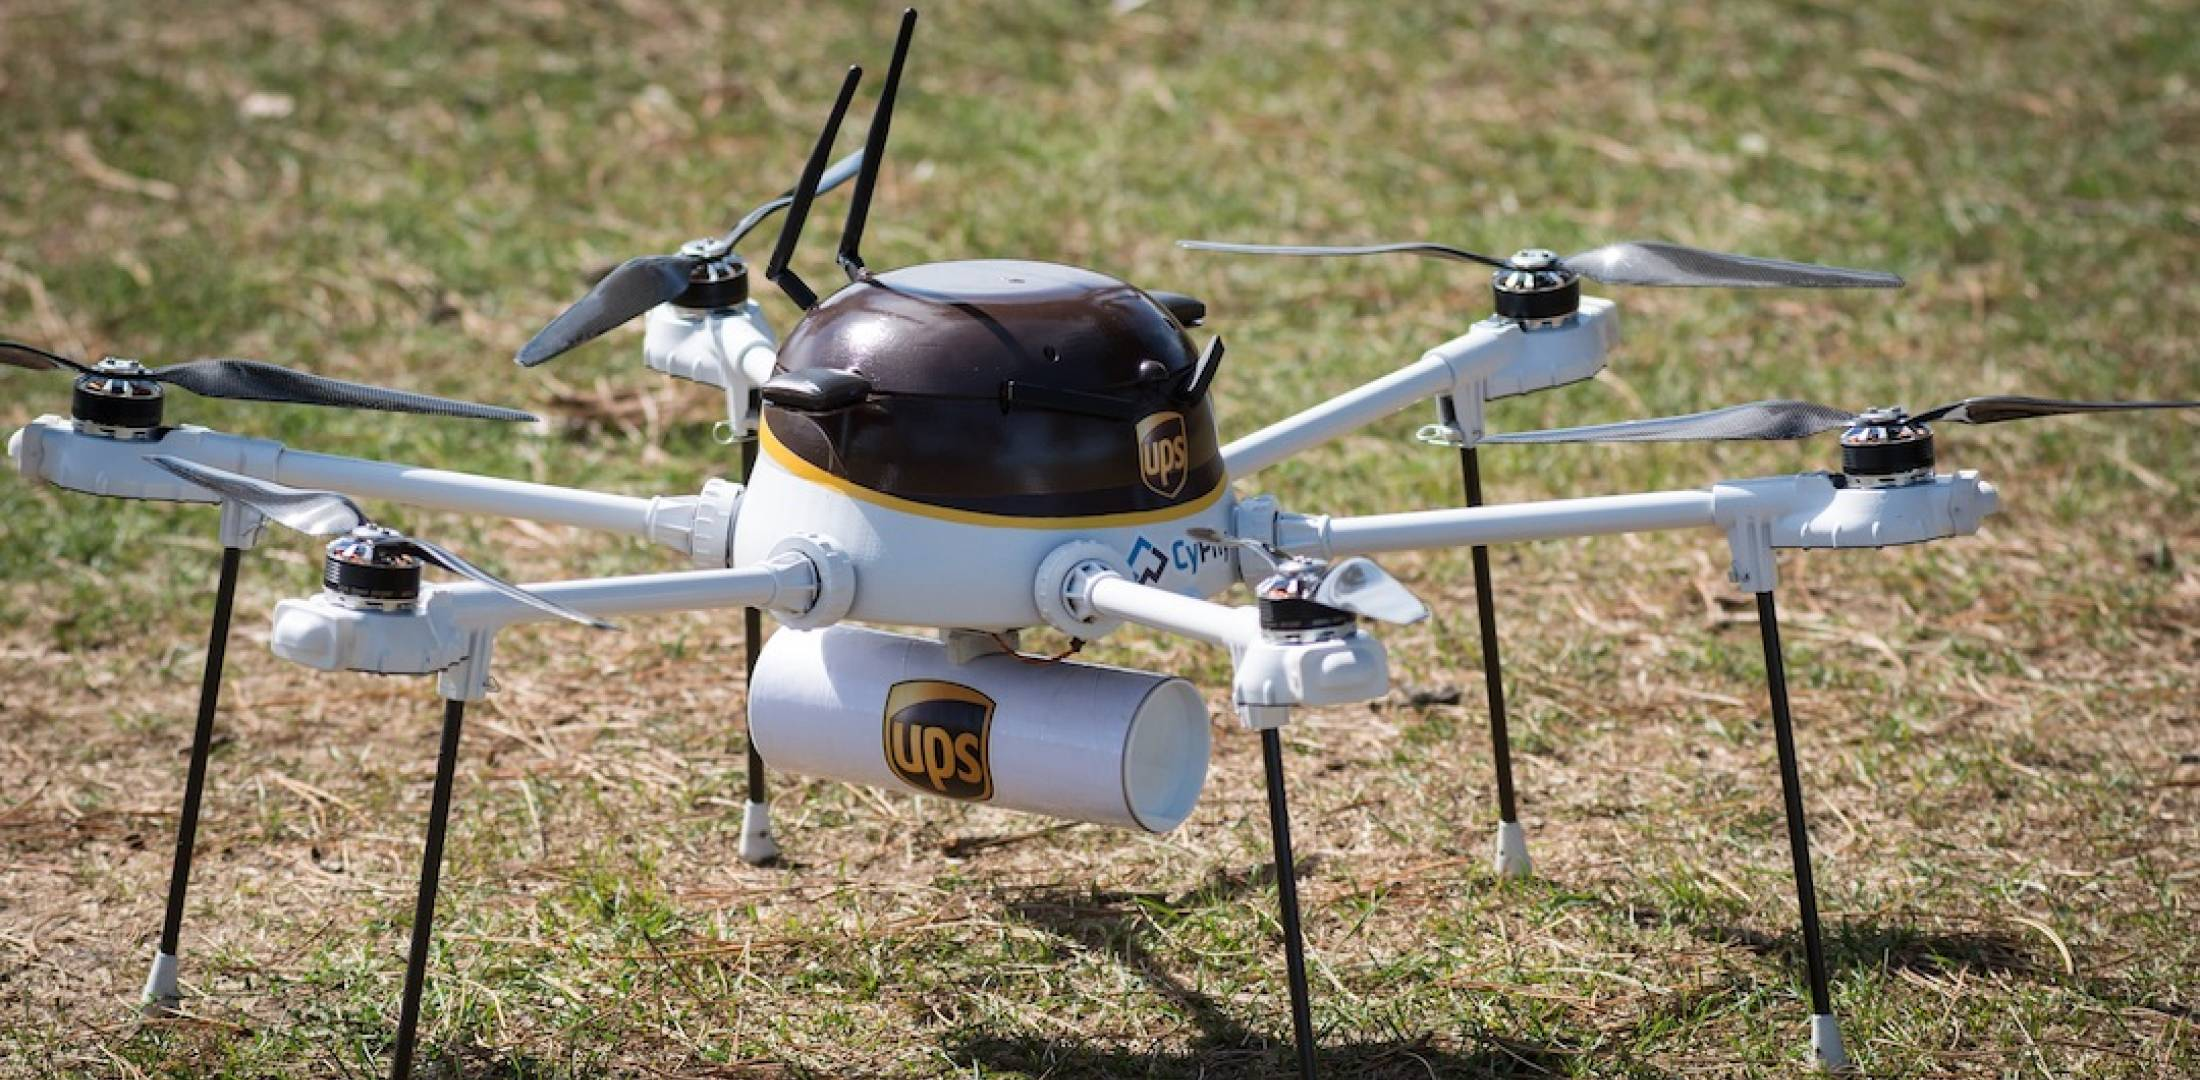 CyPhy Works PARC hexacopter in UPS livery